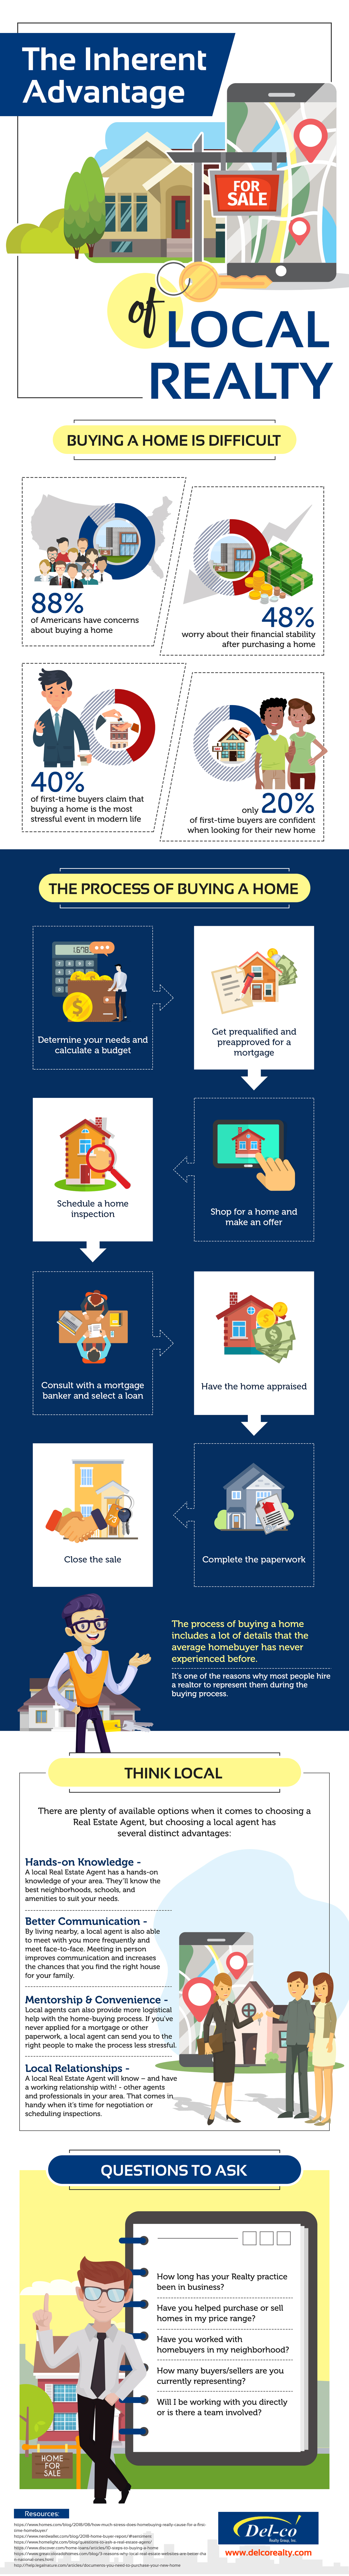 The homebuying process can be overwhelming and full of many challenges, but working with an experienced real estate agency in your local area can help improve the stressful situation.